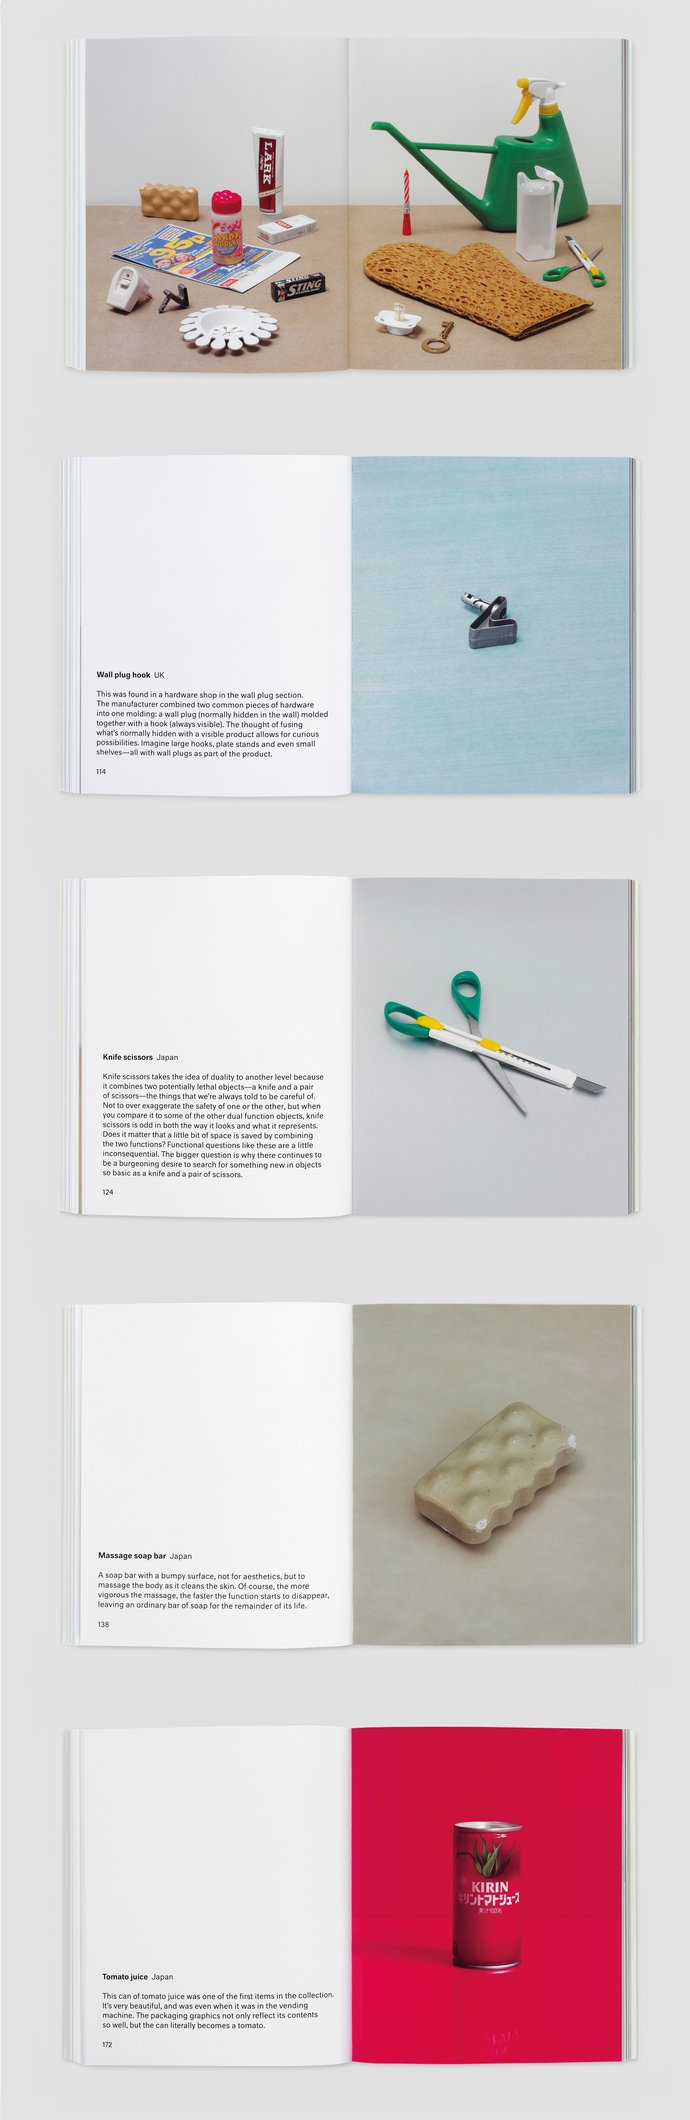 Rizzoli – Usefullness in Small Things: Items from the Under a Fiver Collection, 2011 (Publication), image 3